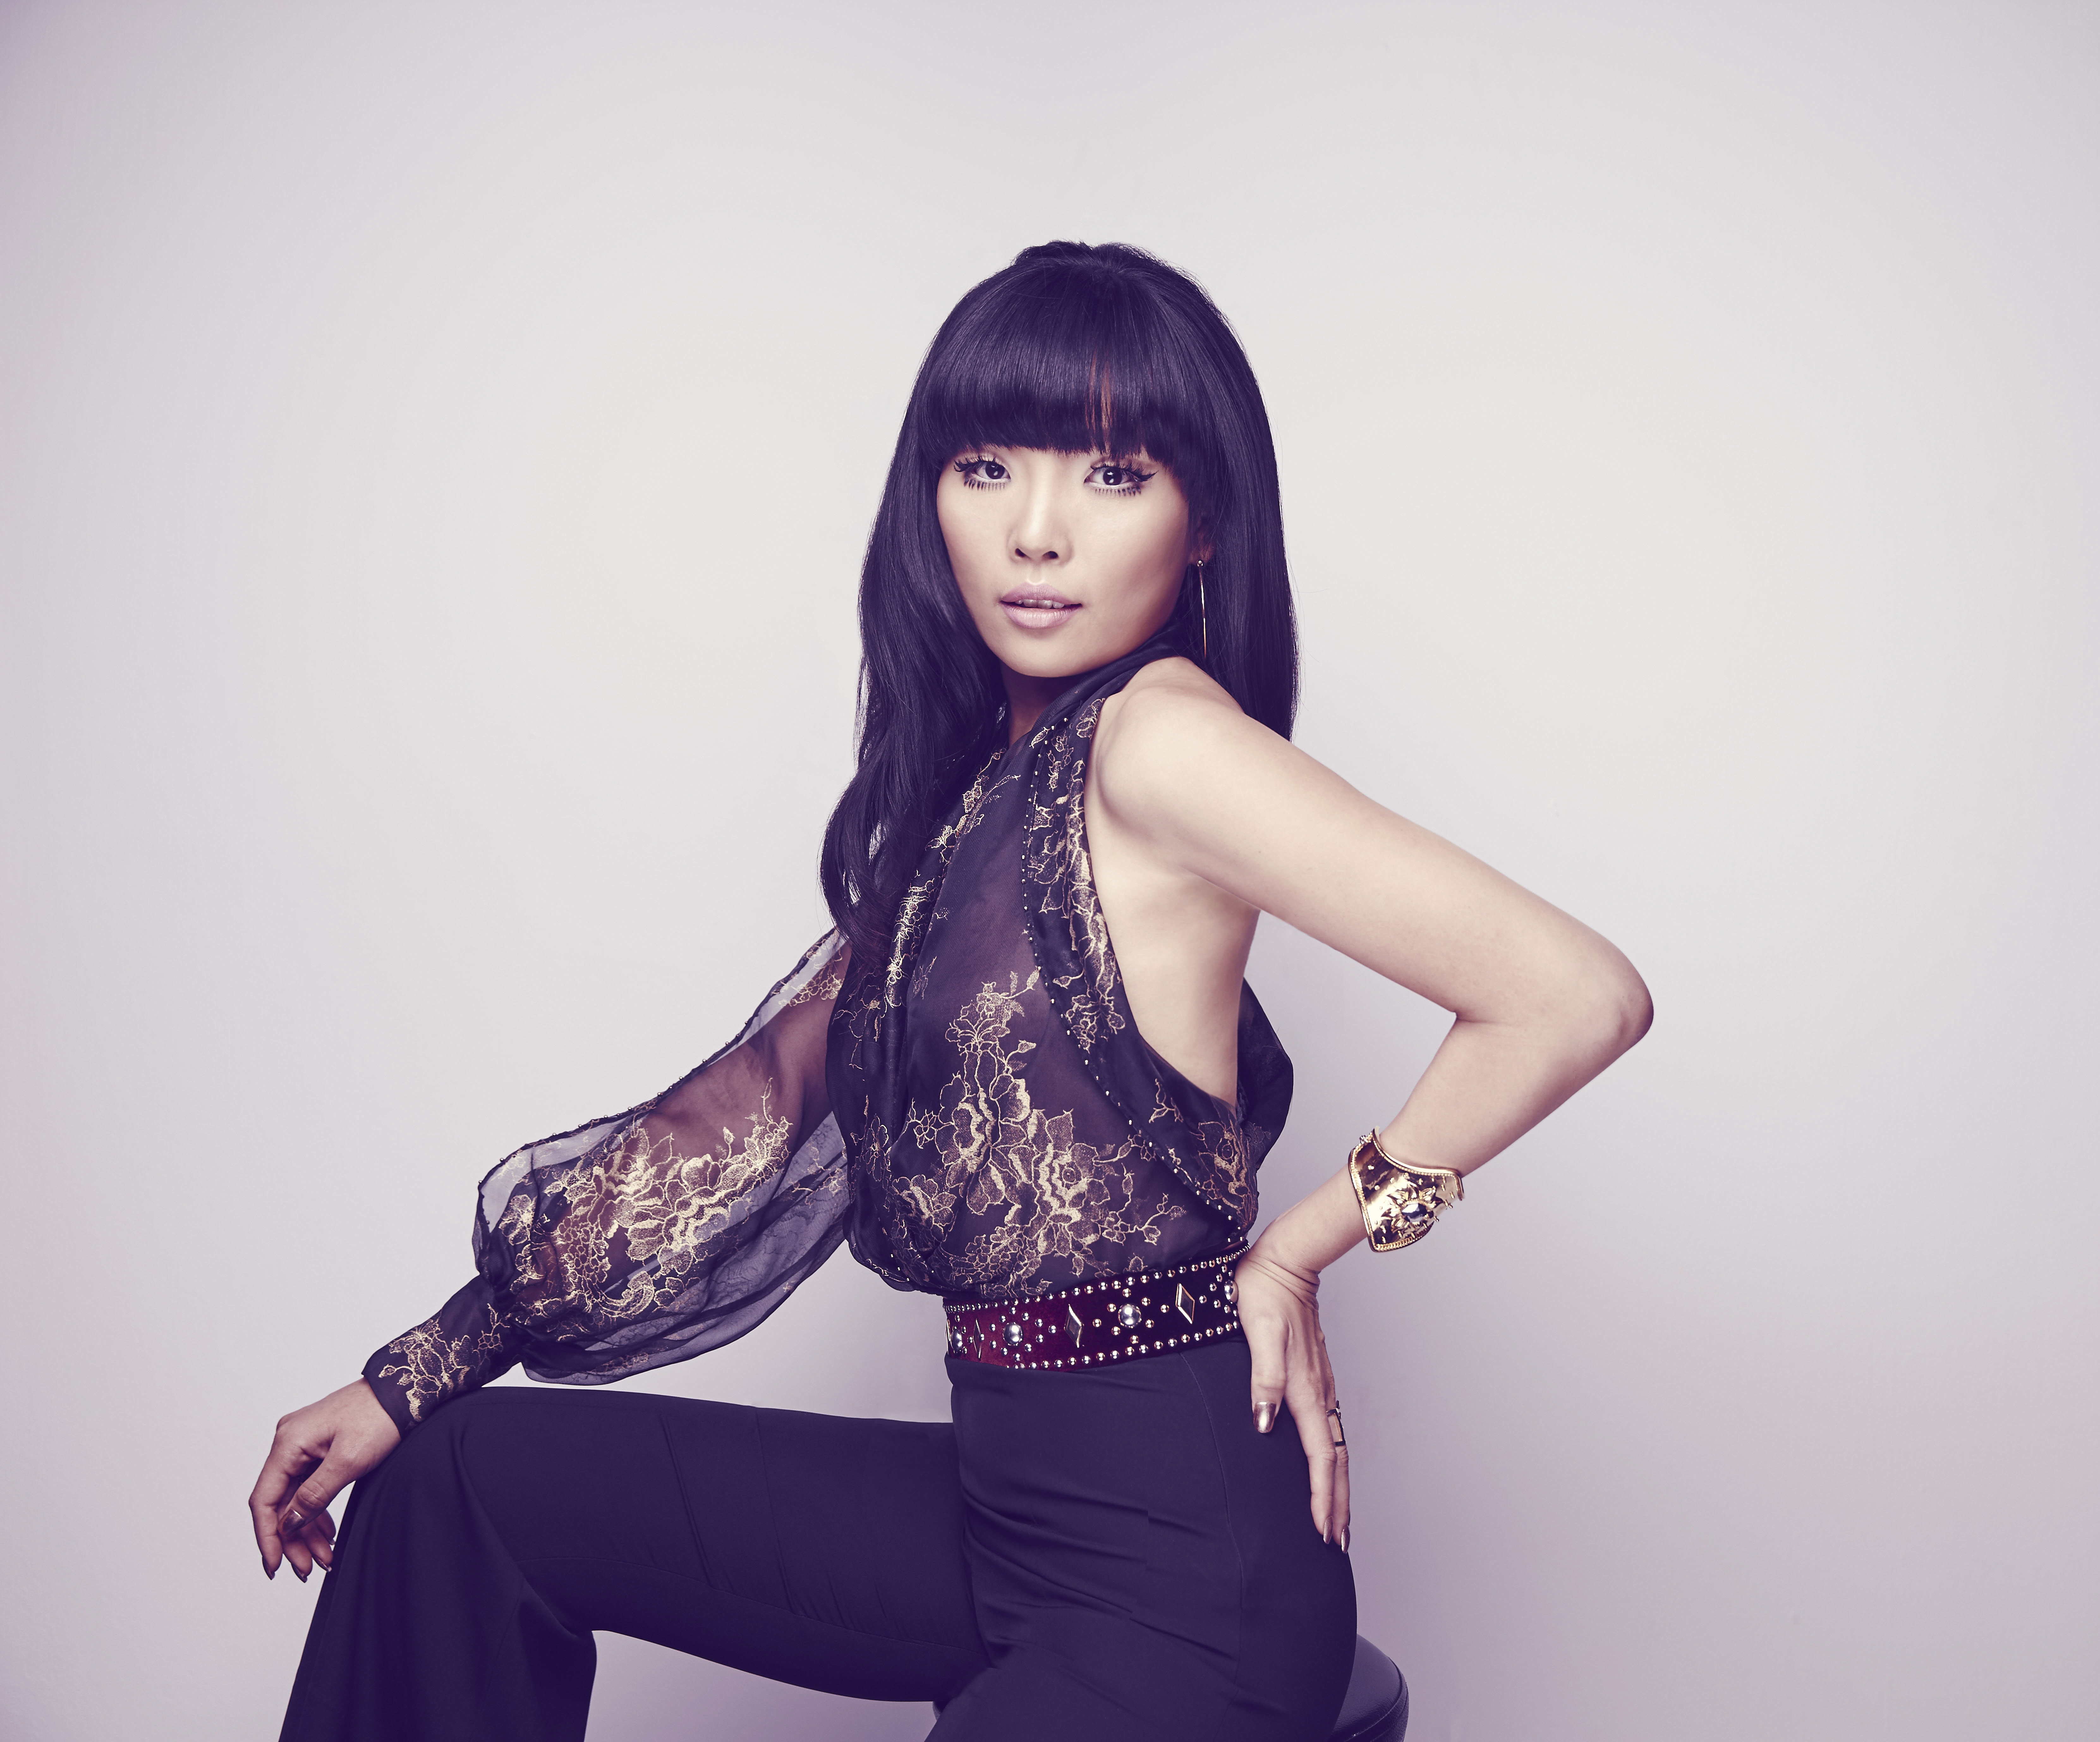 Dami Im Nude Photos 100